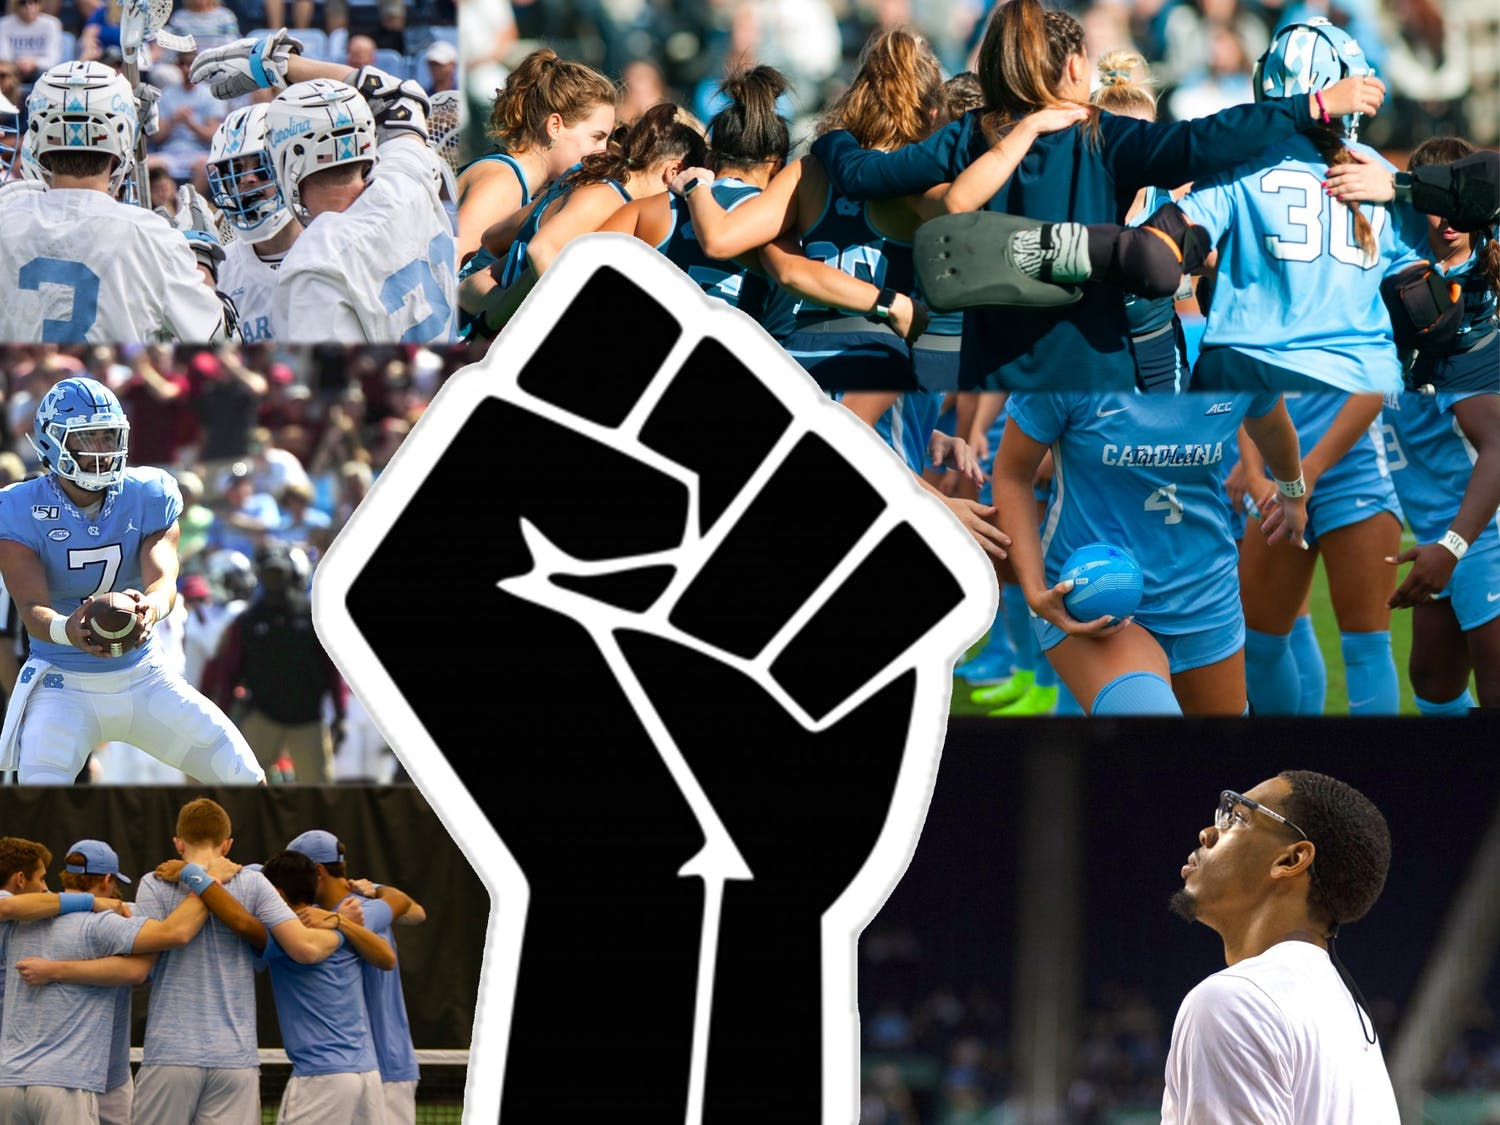 Every UNC sports team, in addition to many athletes such as basketball player Garrison Brooks (bottom right) and football player Sam Howell (middle left) have made statements in support of the recent Black Lives Matter and anti-police brutality protests.